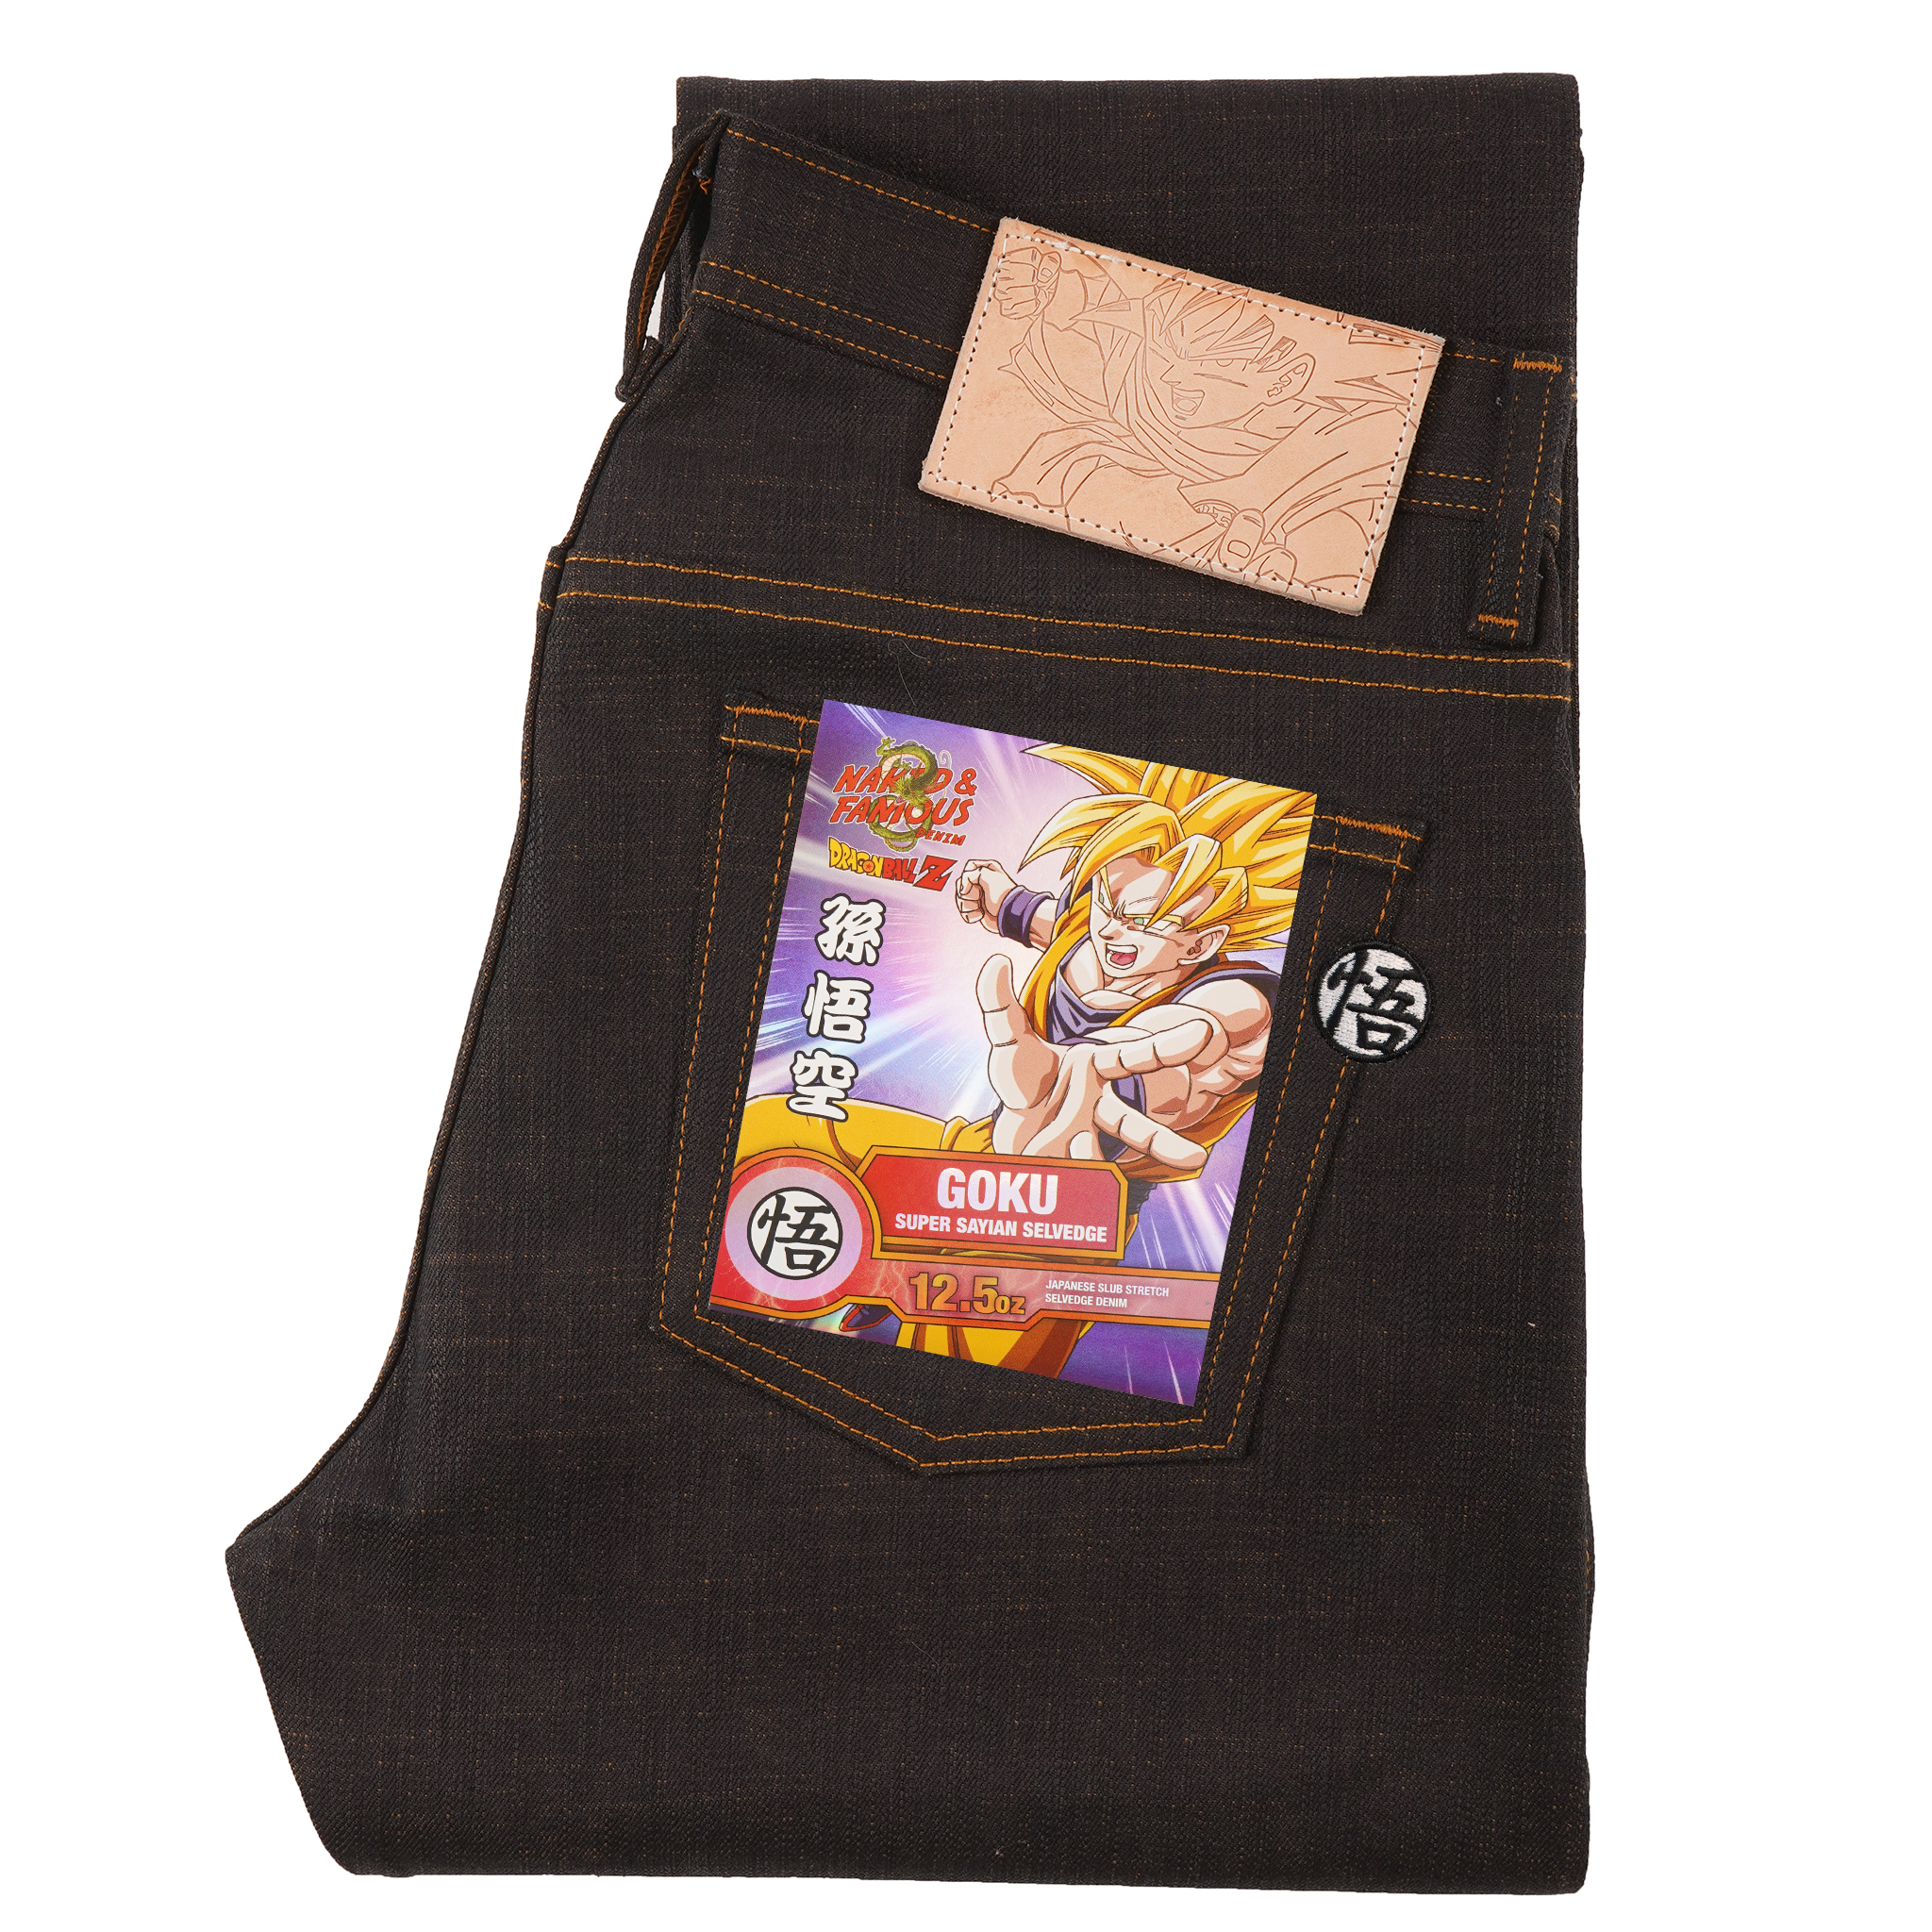 Goku Super Saiyan Selvedge - Super Guy / Weird Guy / Easy Guy